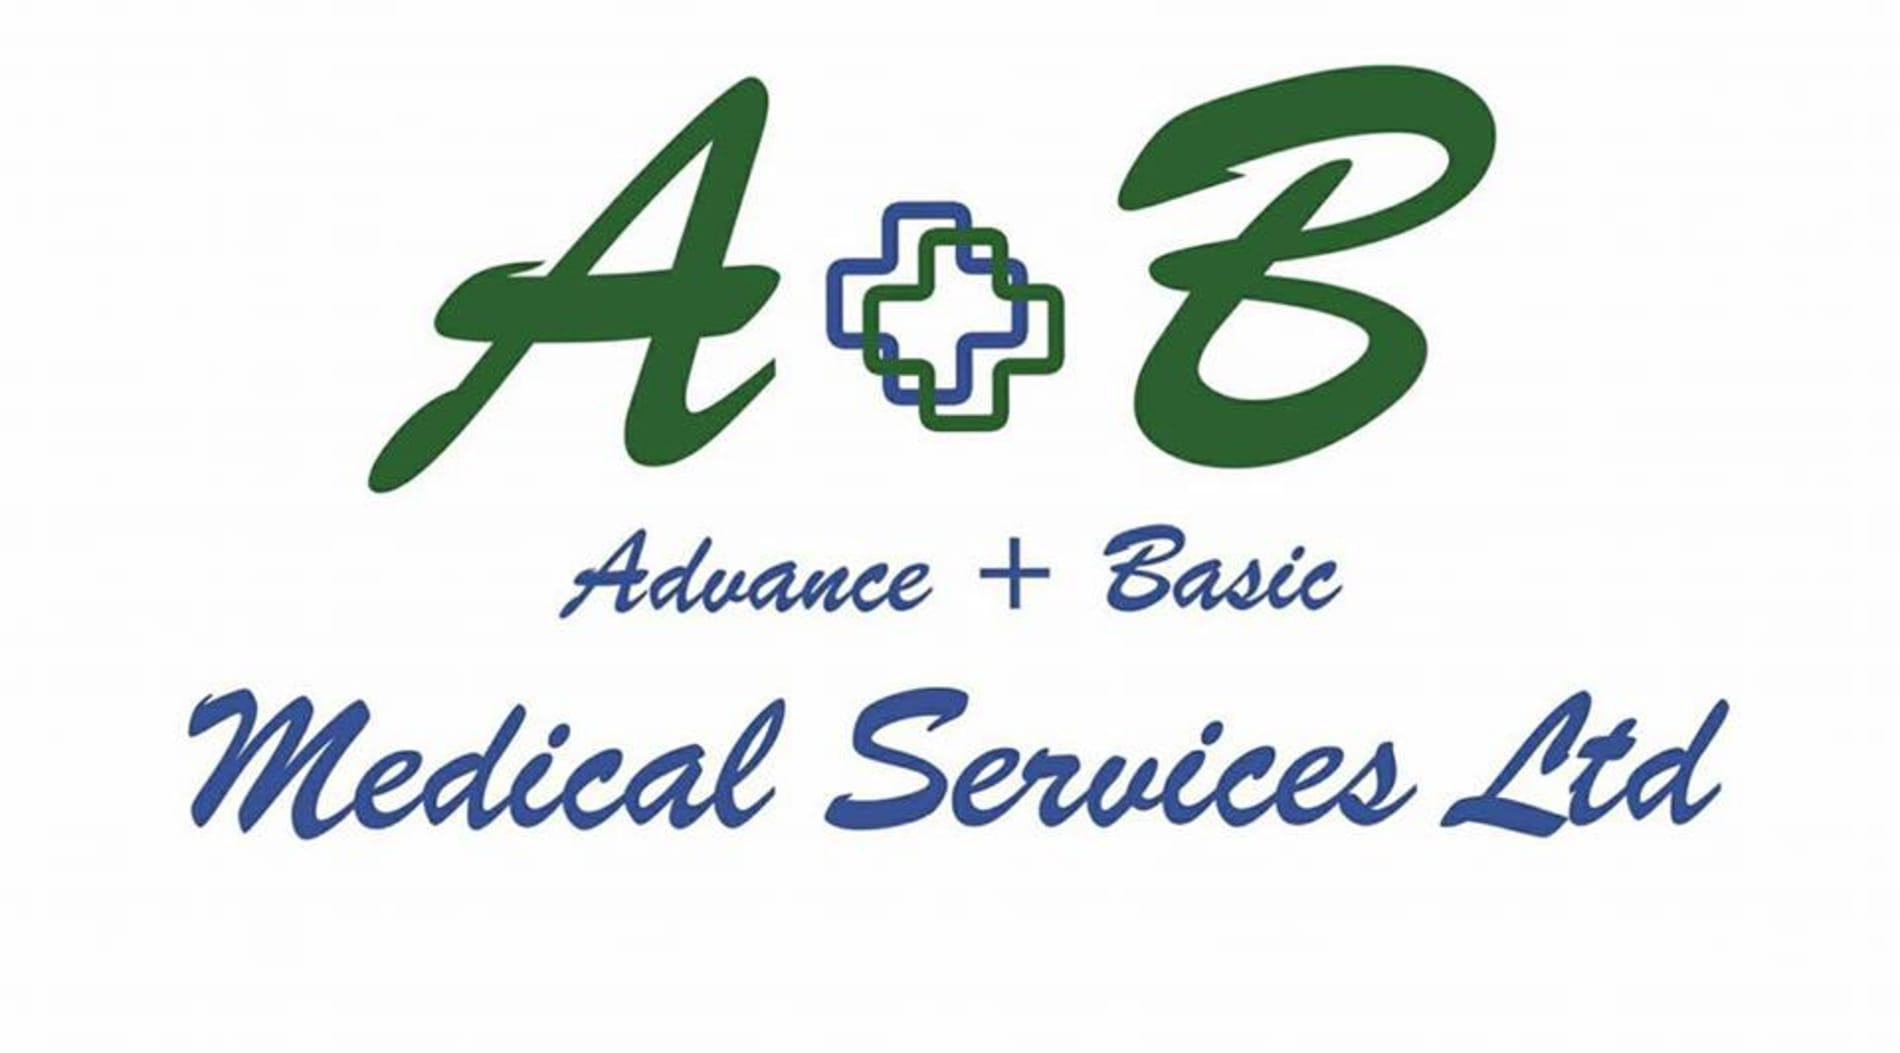 Advanced + Basic Medical Services